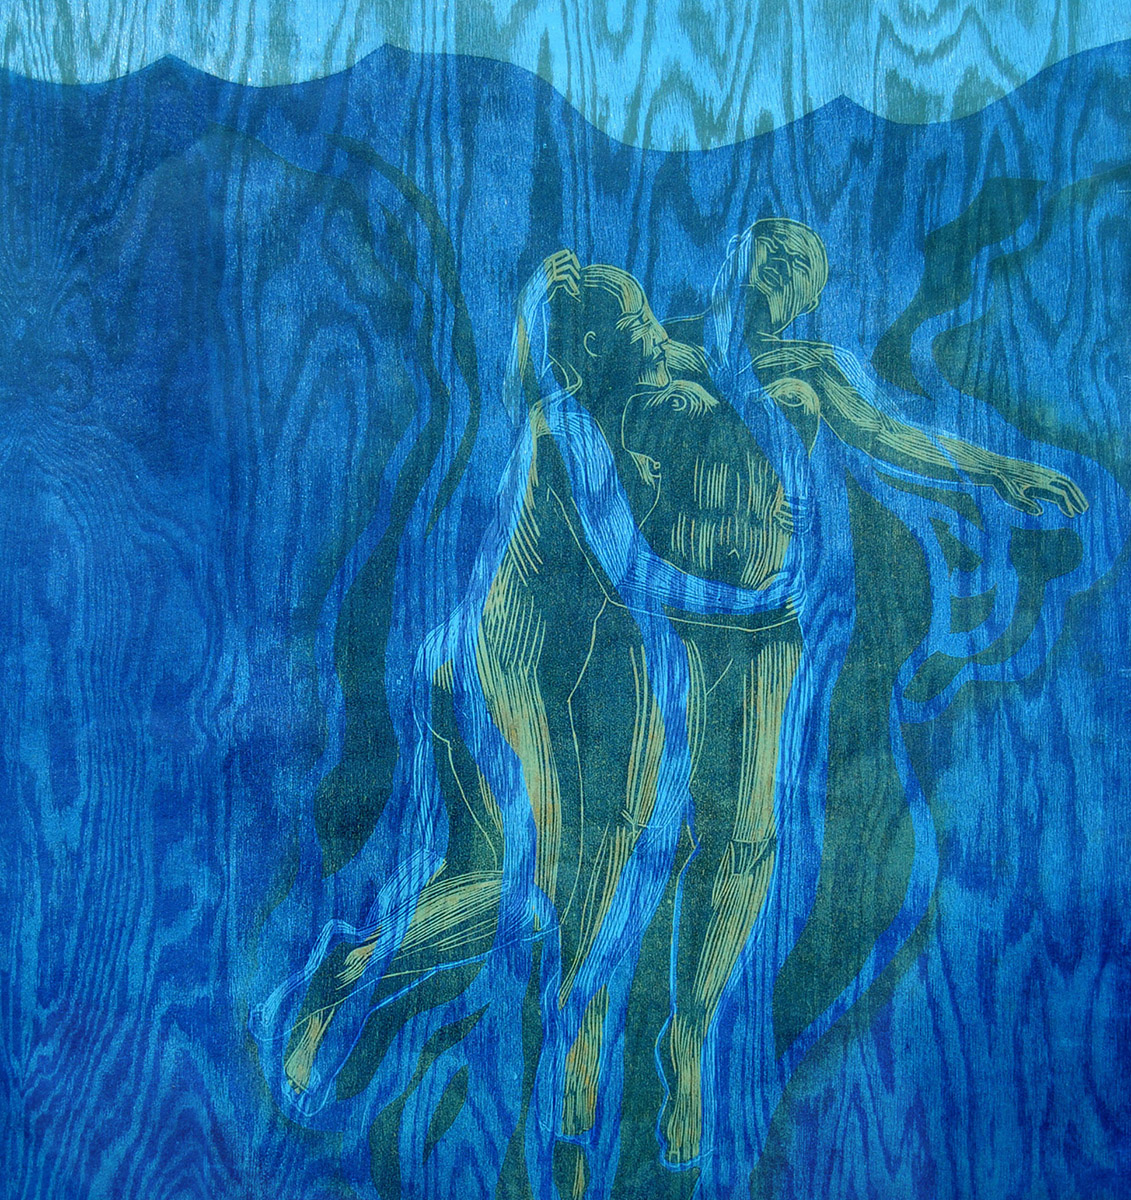 """Pamela Dodds / """"Undertow 3"""" Detail / 96 x 24 in / Relief print and printed woodgrain patterns on Japanese Paper / 2016"""